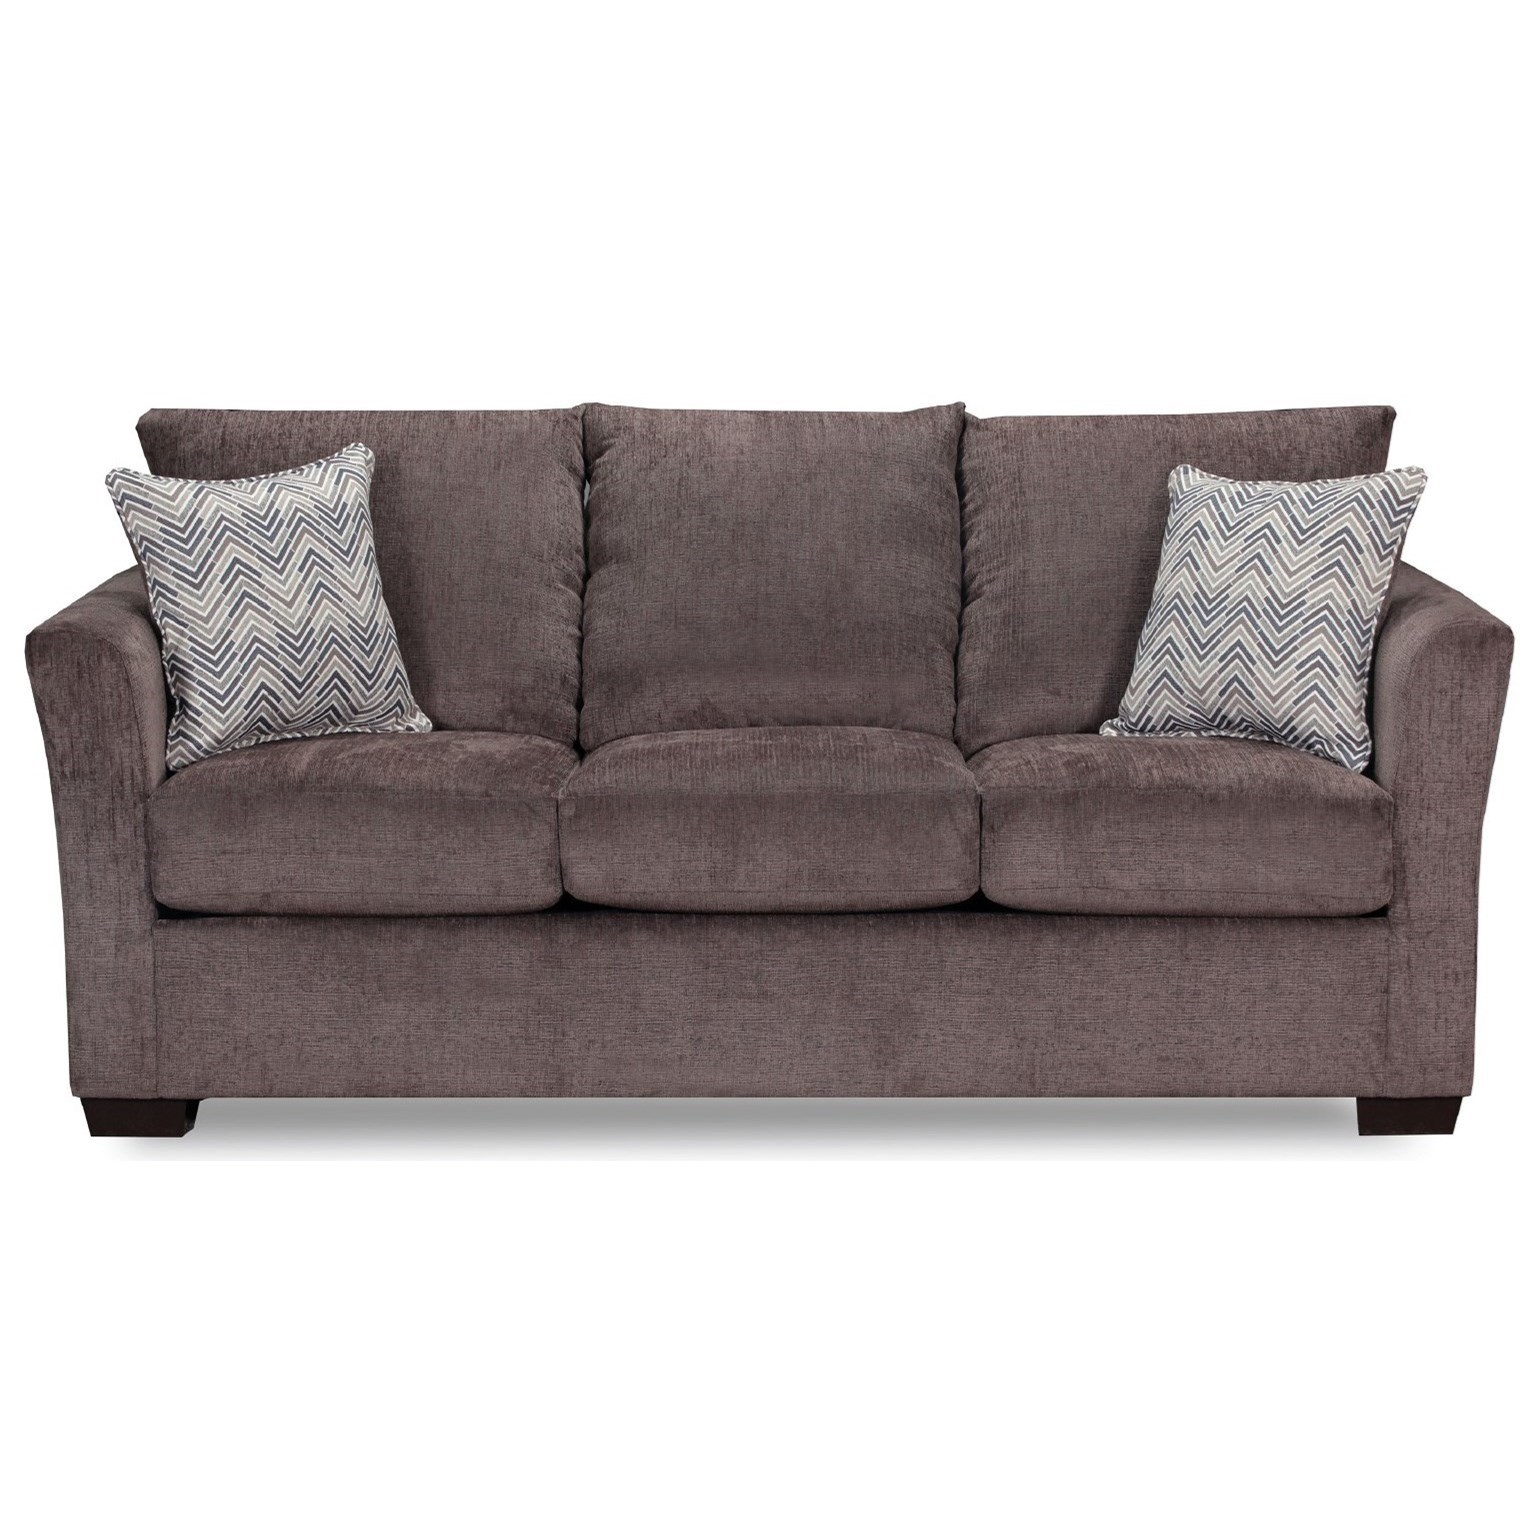 4206 Transitional Sofa by Lane at Powell's Furniture and Mattress